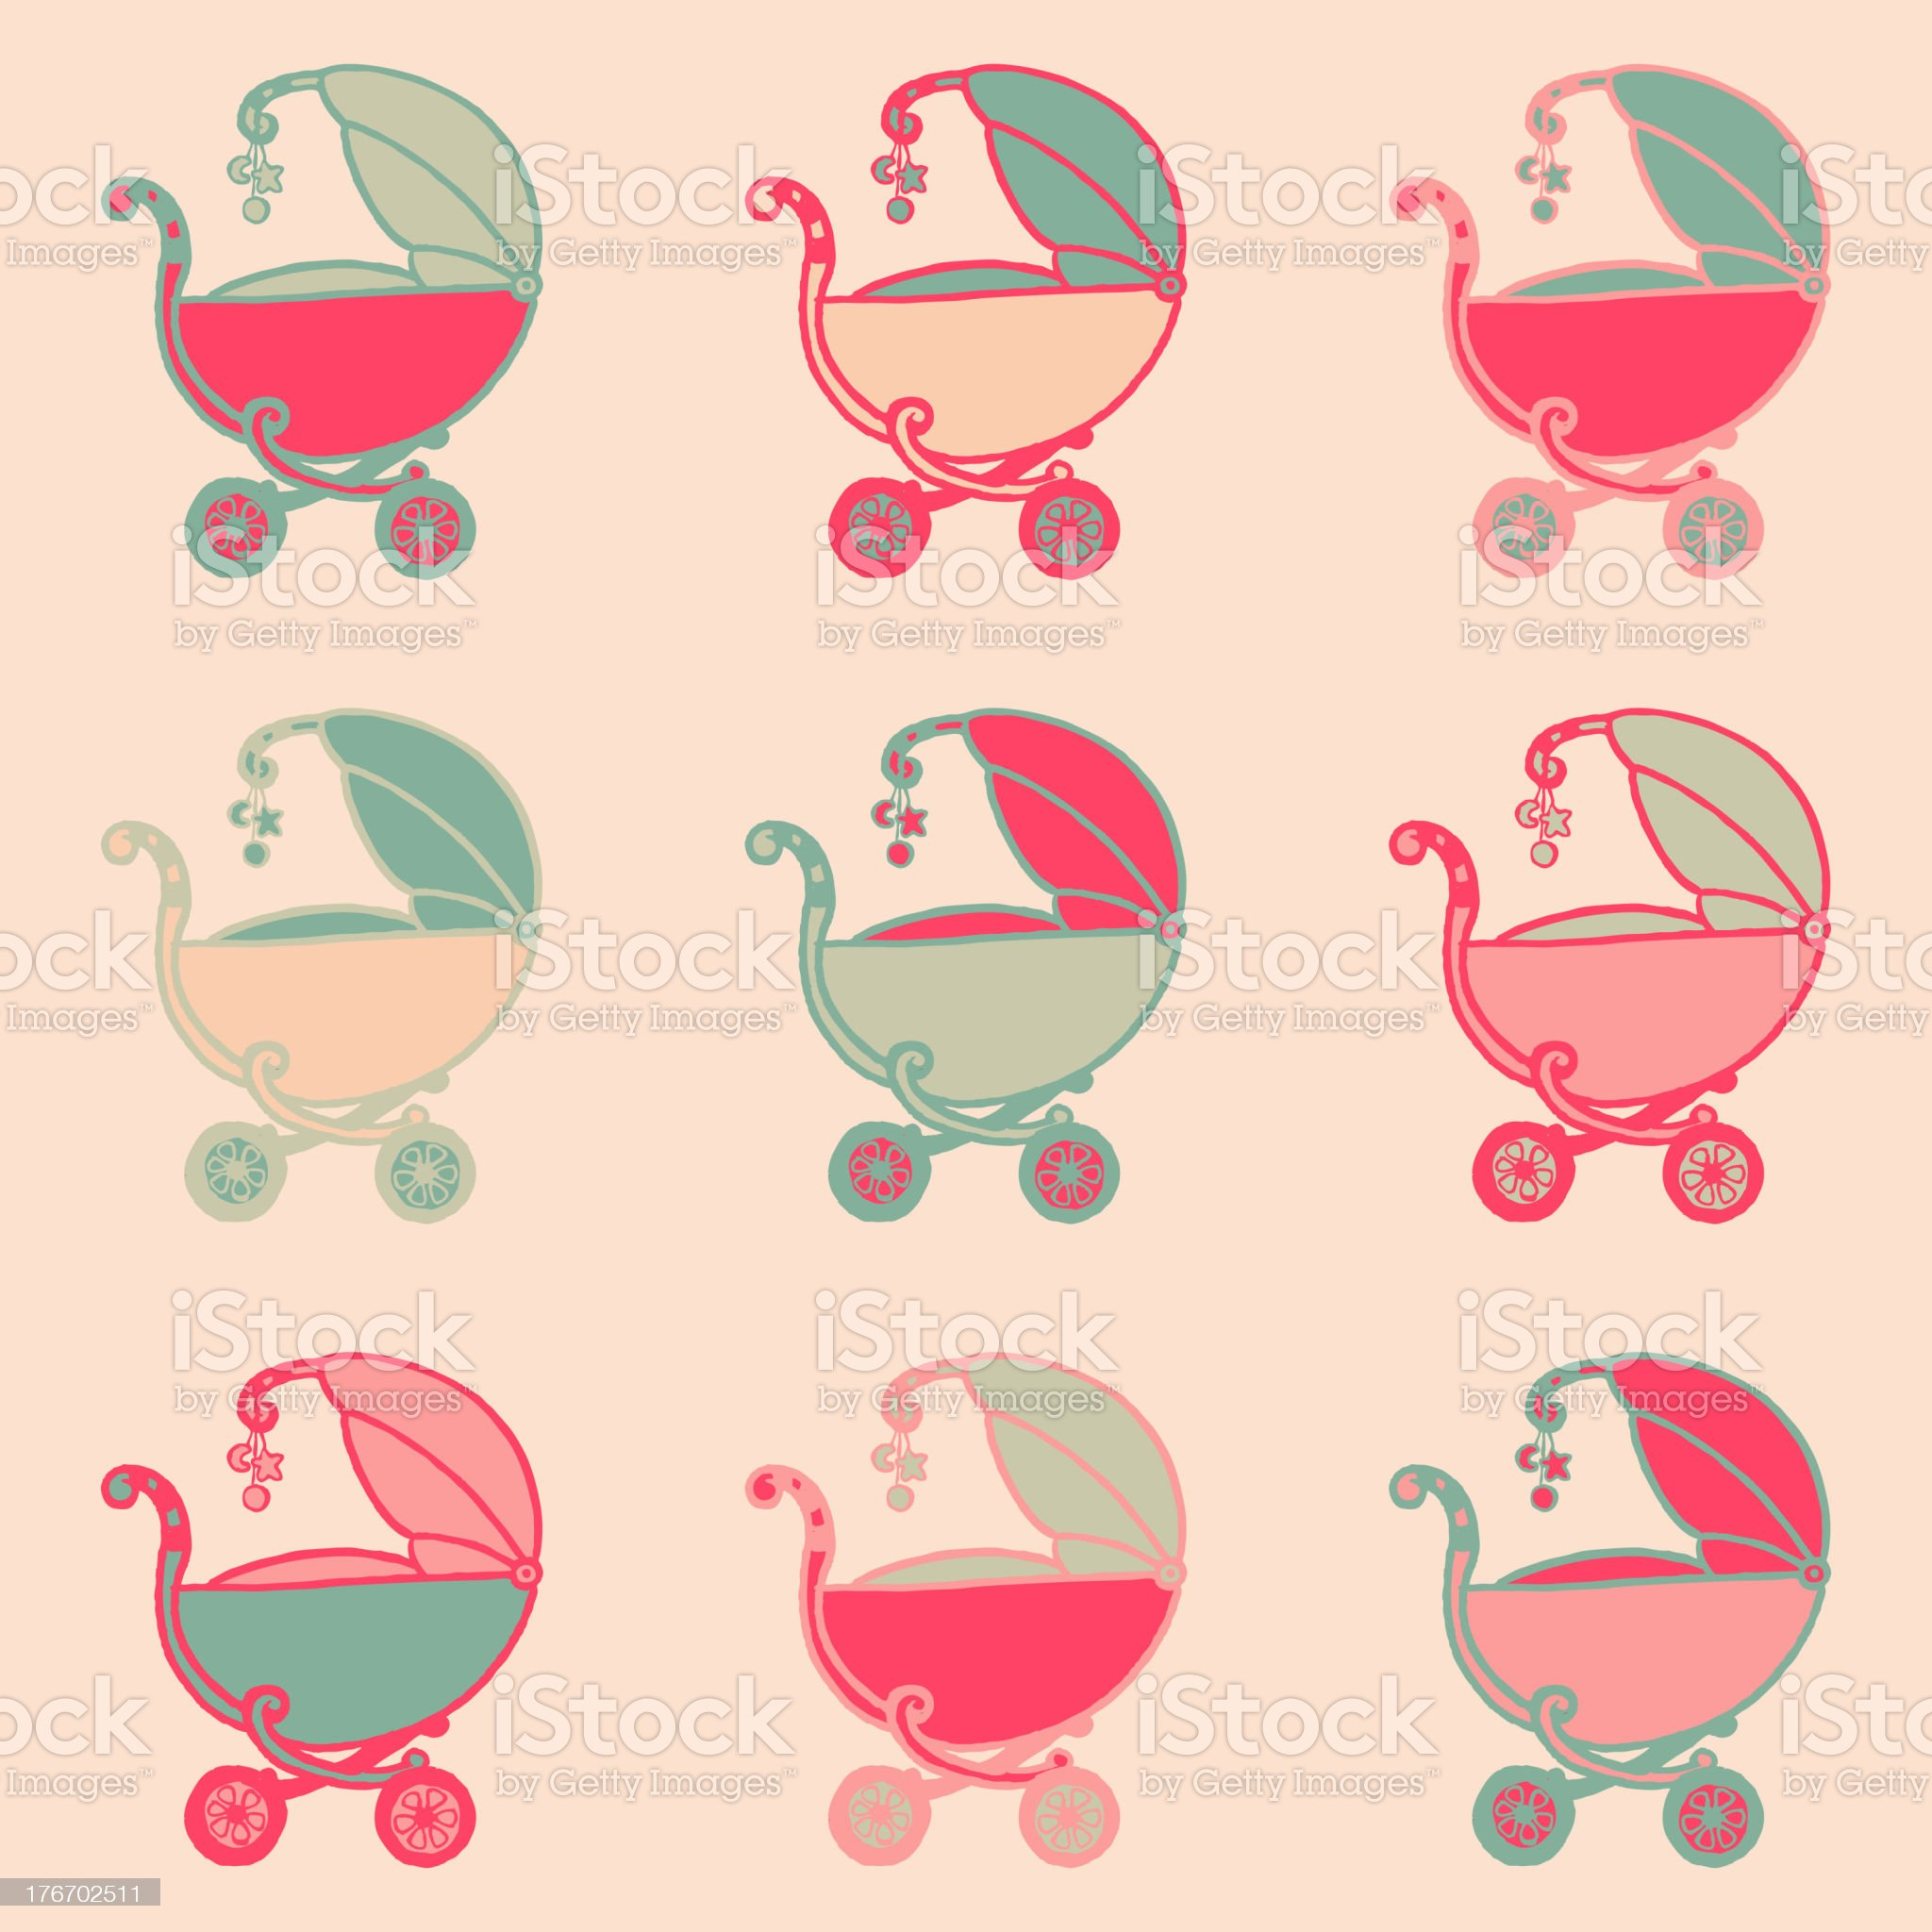 Baby Background royalty-free stock vector art